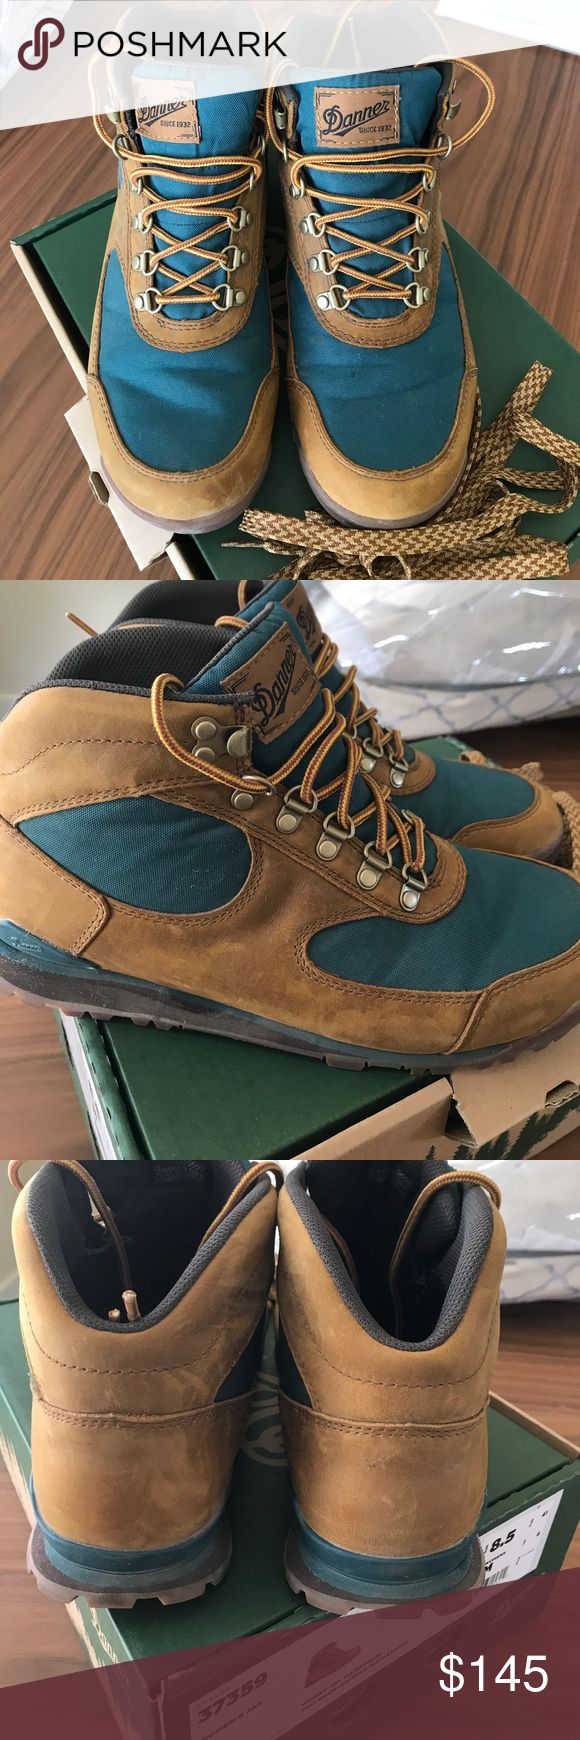 Danner Jag Hiking Boots Worn once Danner hiking boots. Fit true to size for me. Color is a brown and dark teal. Extra set of laces. Great boots, ideal for day hikes- selling because I needed boots for a longer trek. Smoke free home. Danner Shoes Lace Up Boots